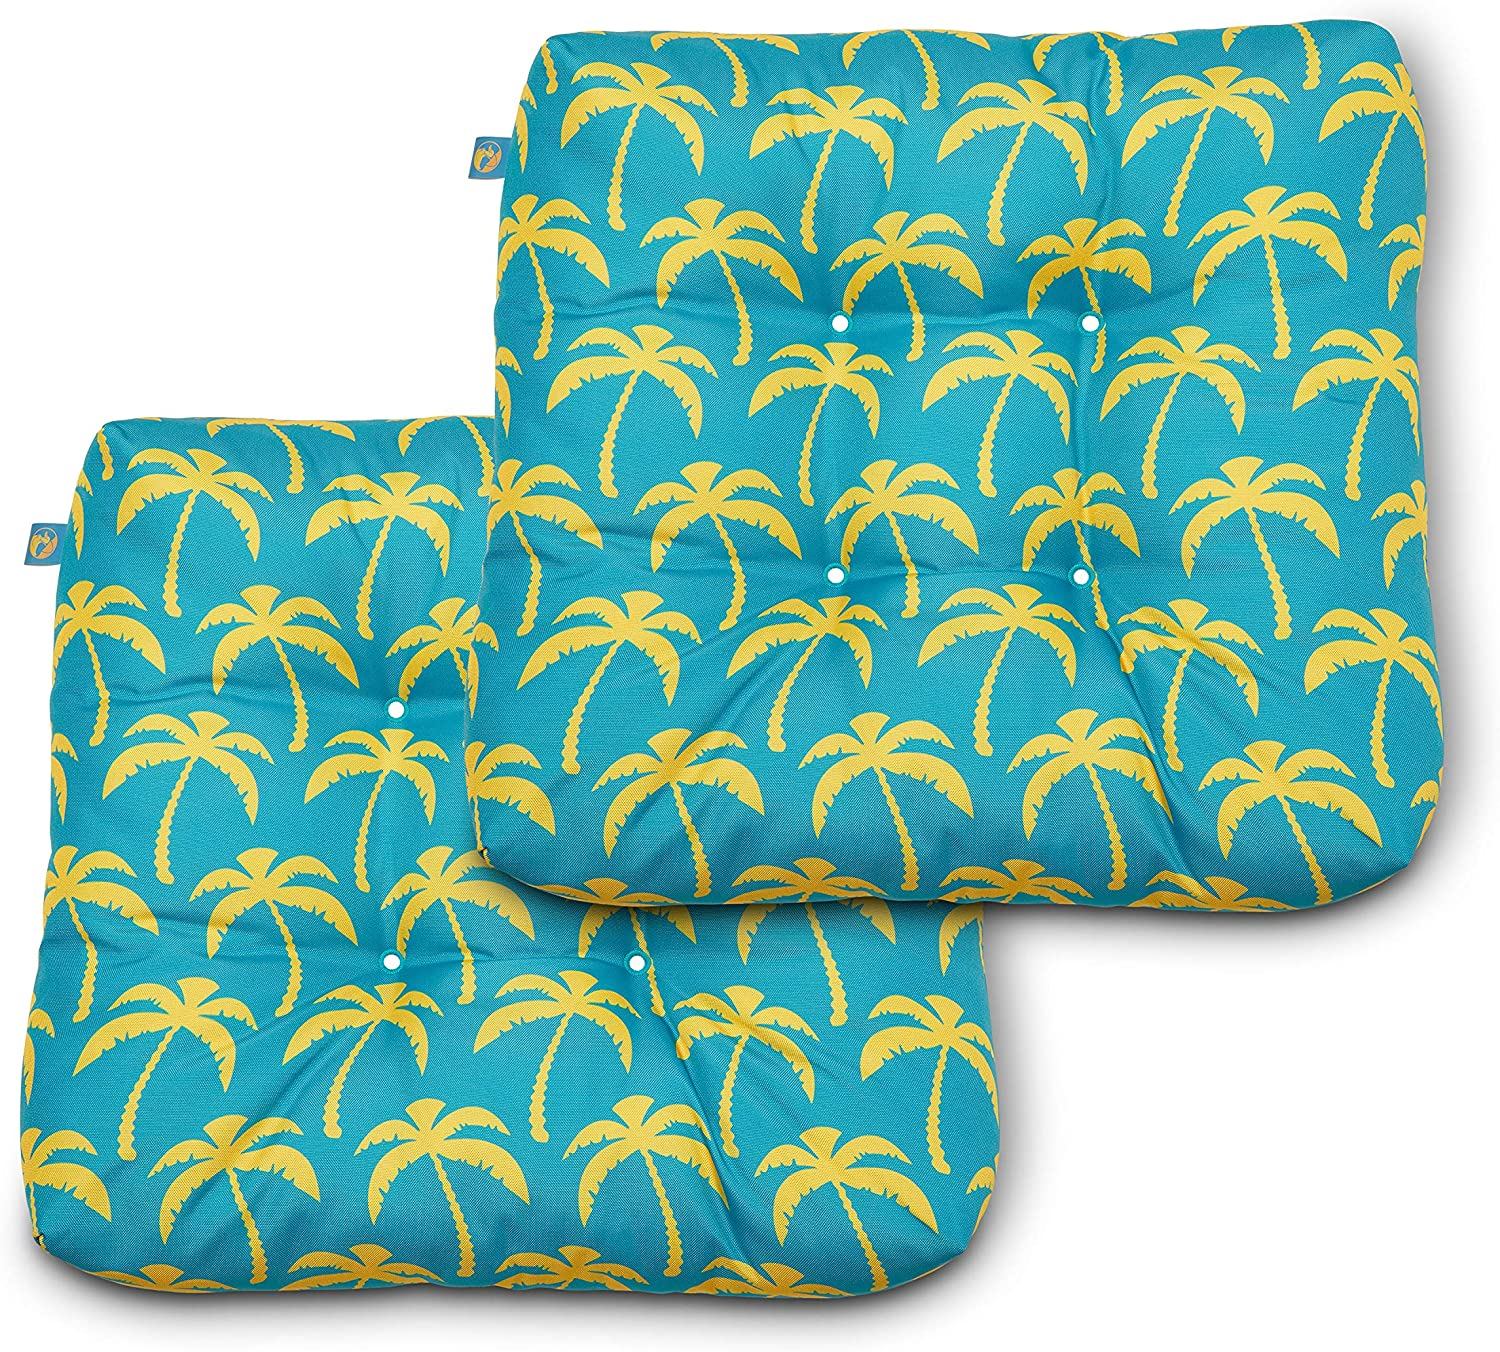 Duck Covers Water-Resistant 19 x 19 x 5 Inch Indoor Outdoor Seat Cushions, Real Teal Palm, 2-Pack